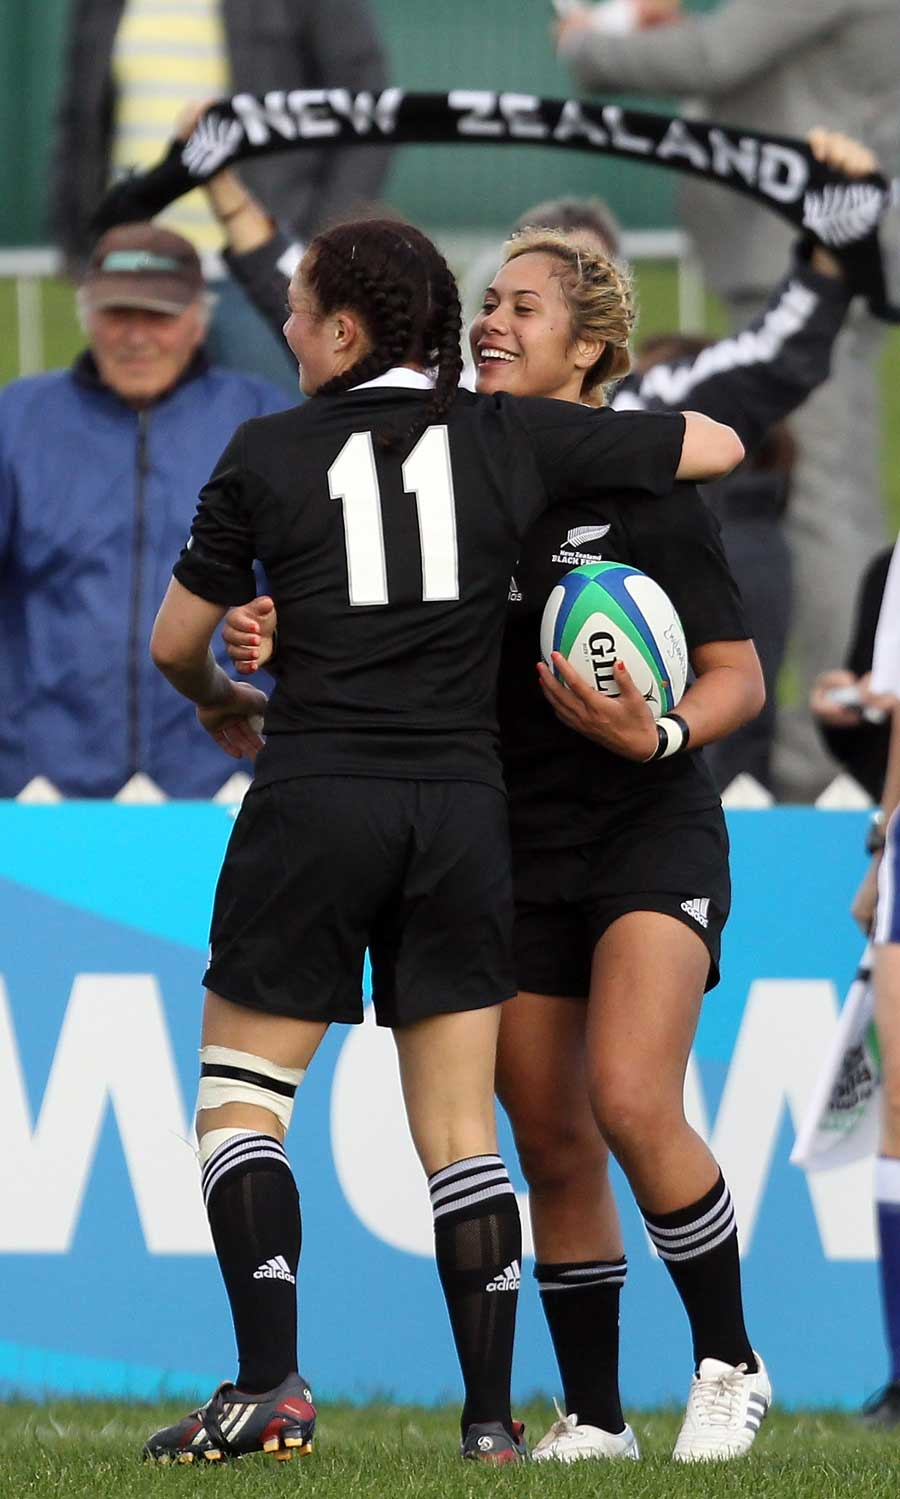 New Zealand's Huriana Manuel is congratulated after scoring